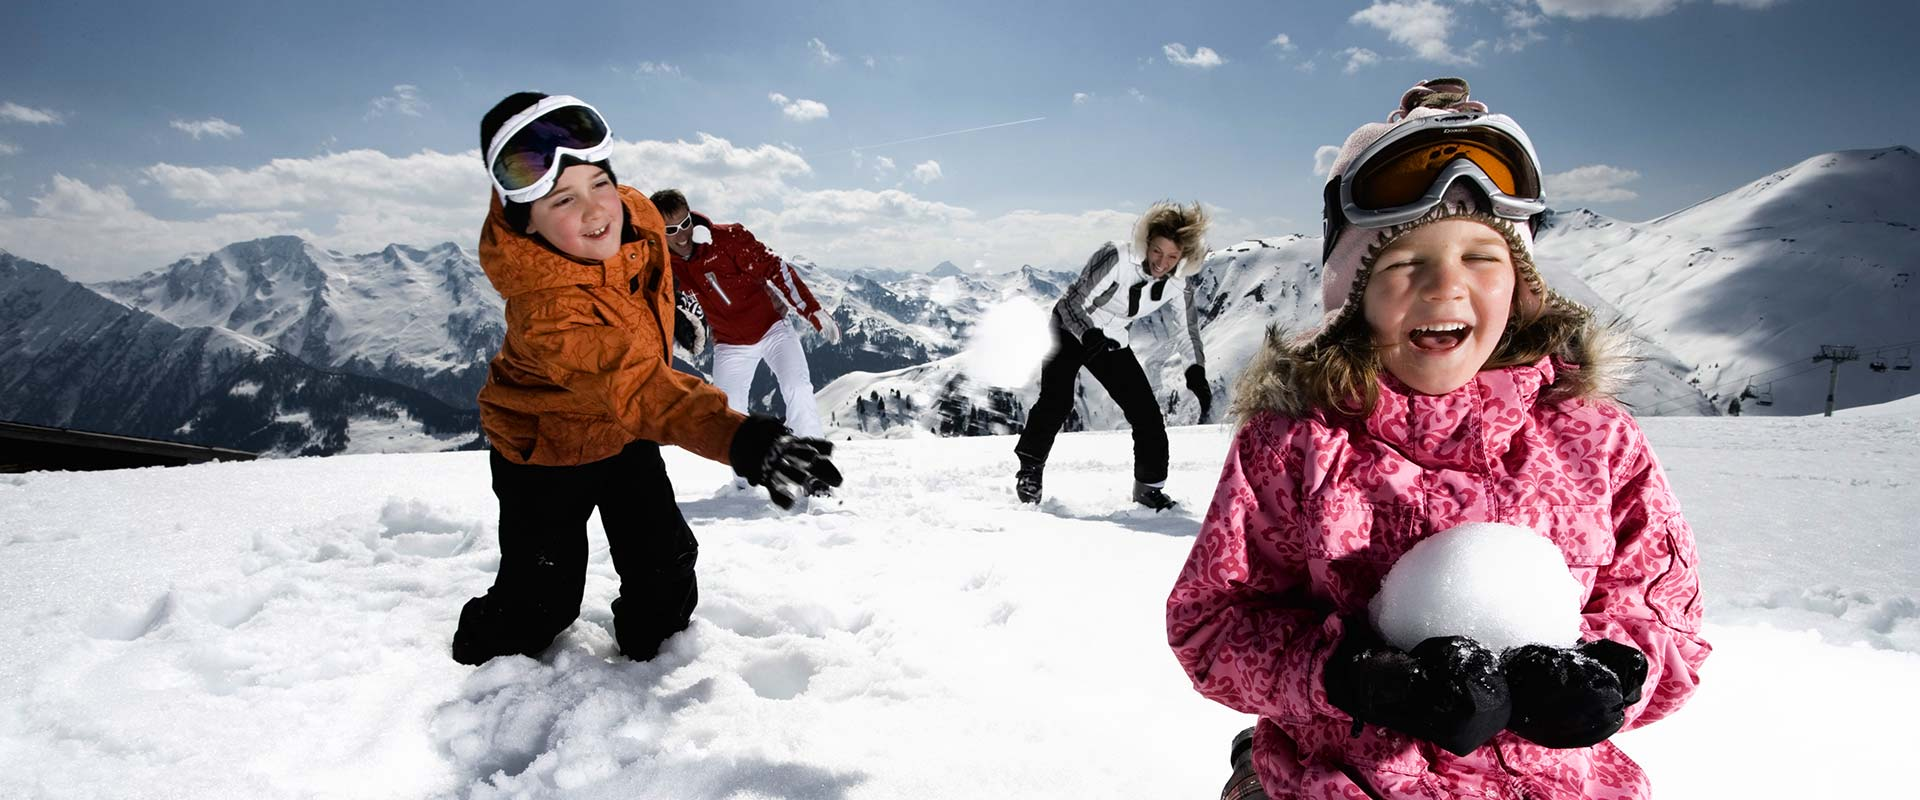 Children, winter holiday is fun like this